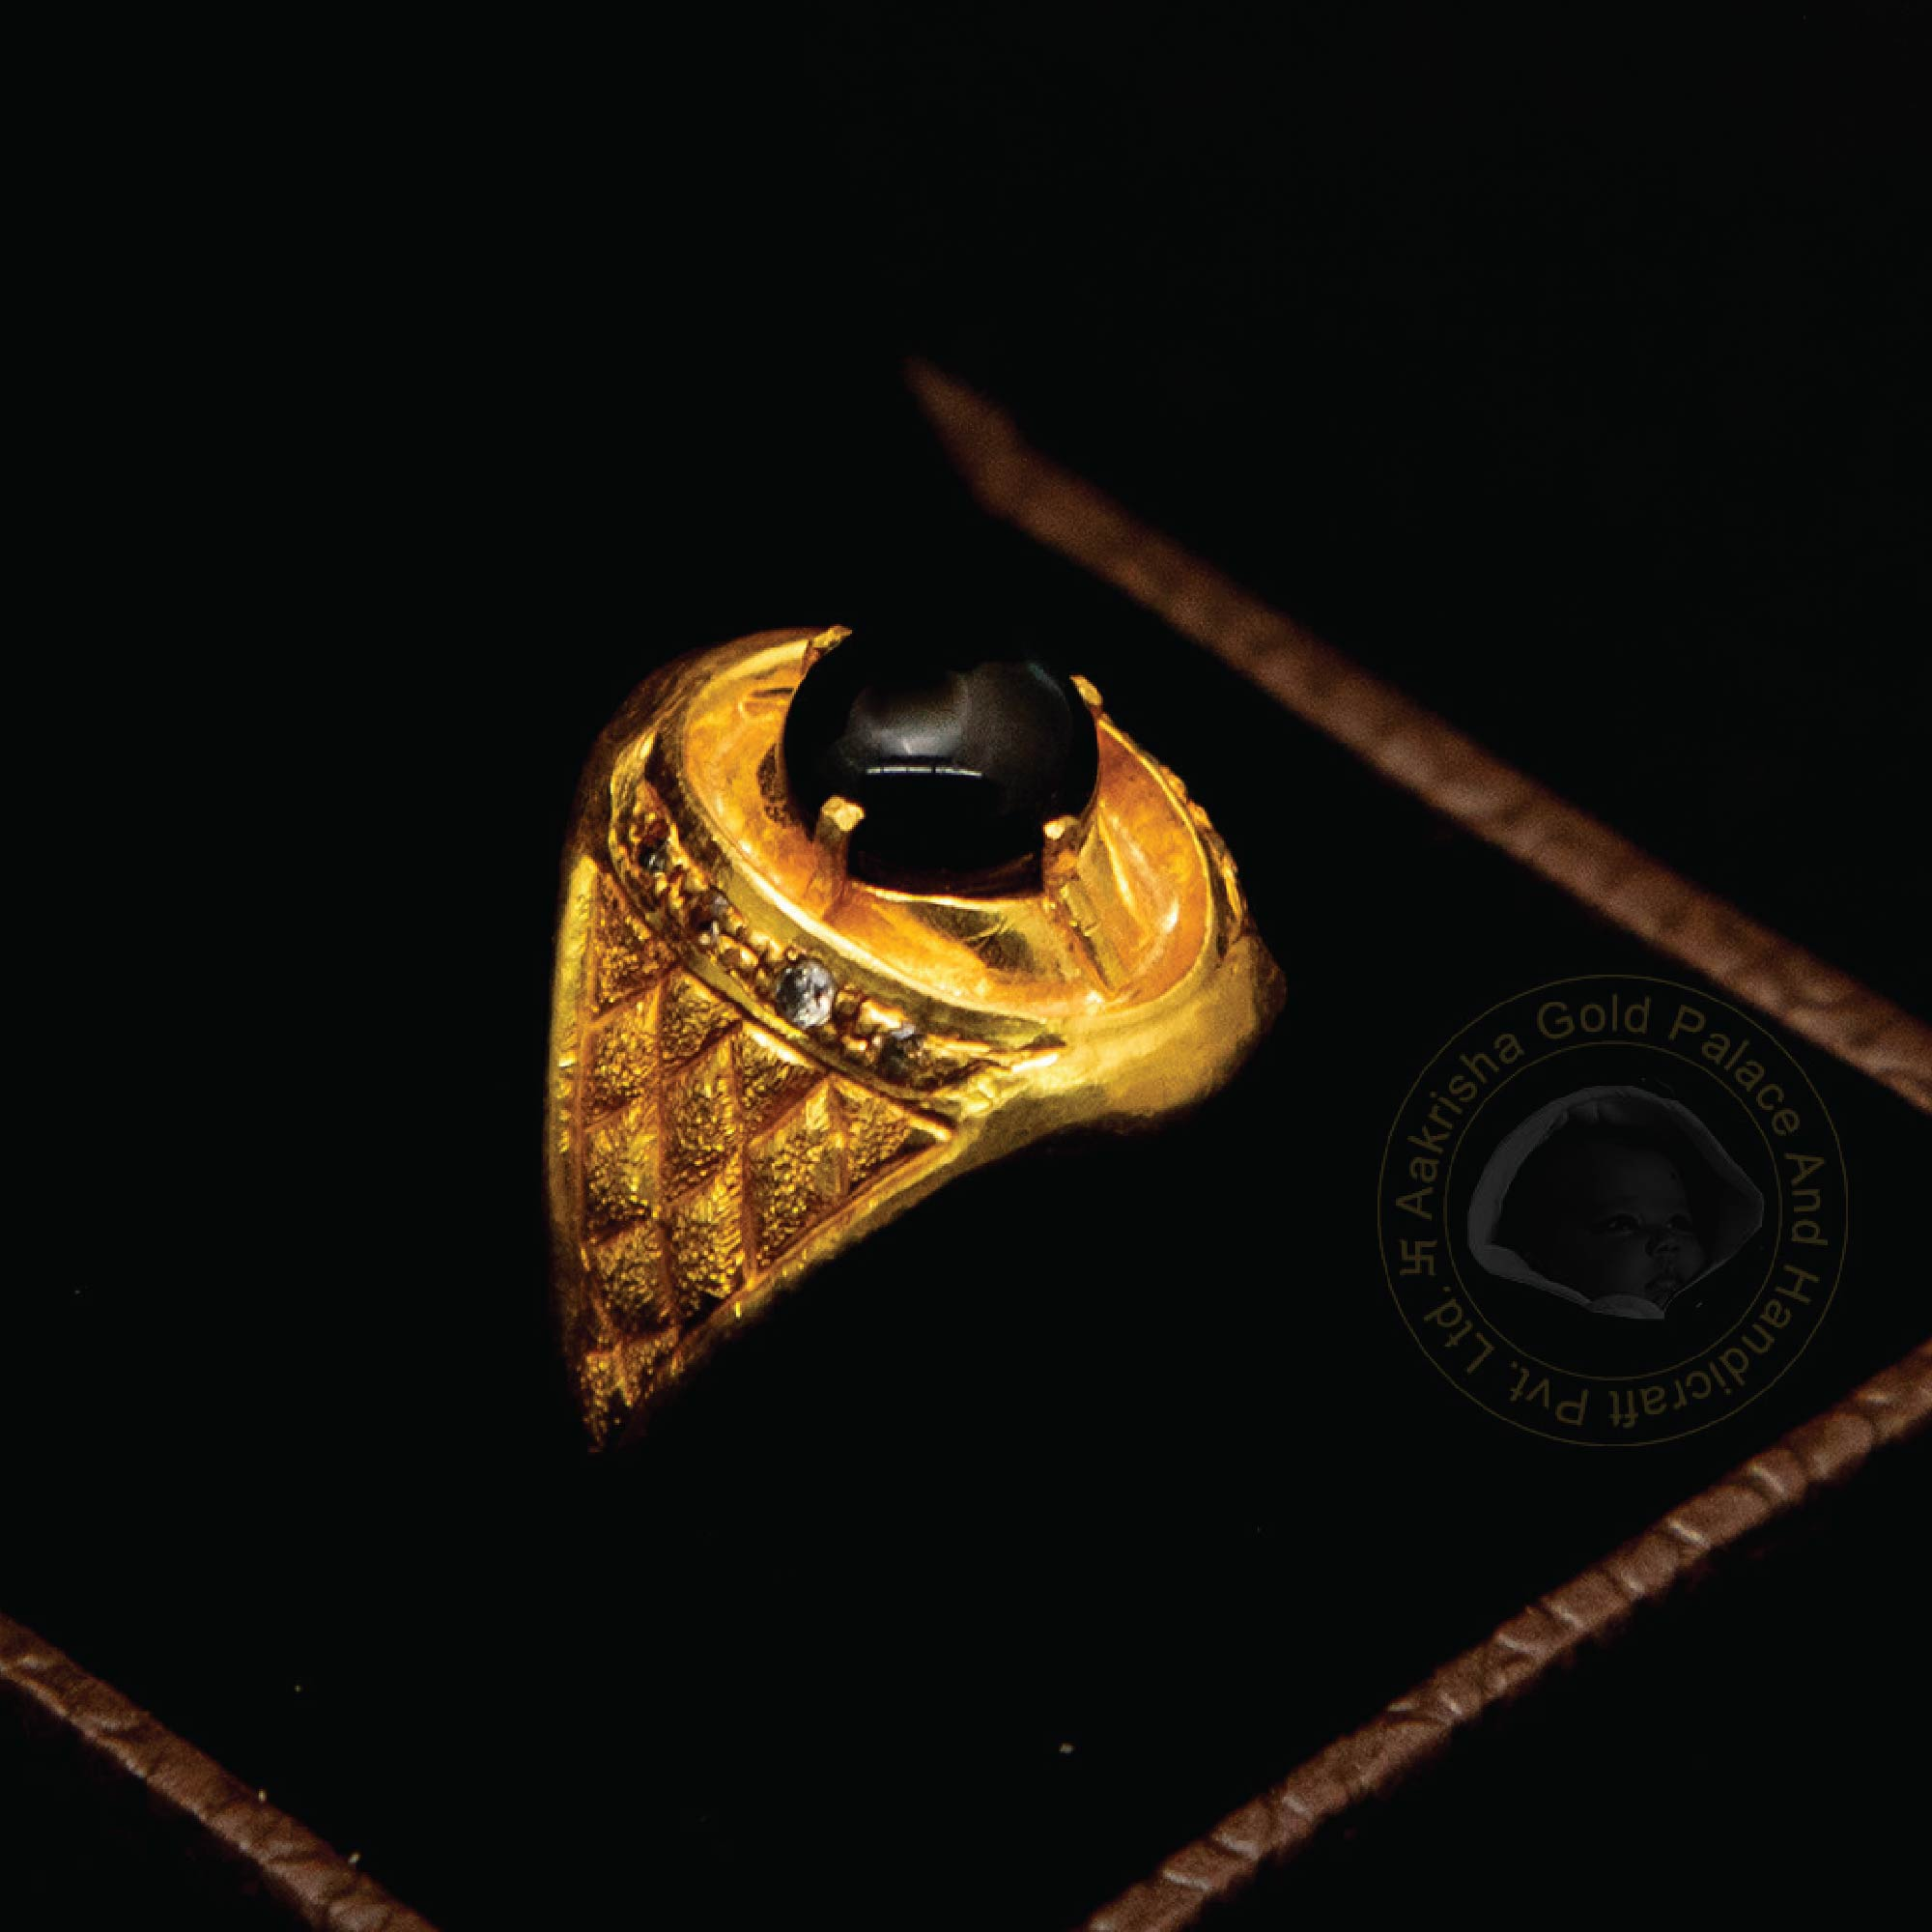 Golden Ring with Black Onyx